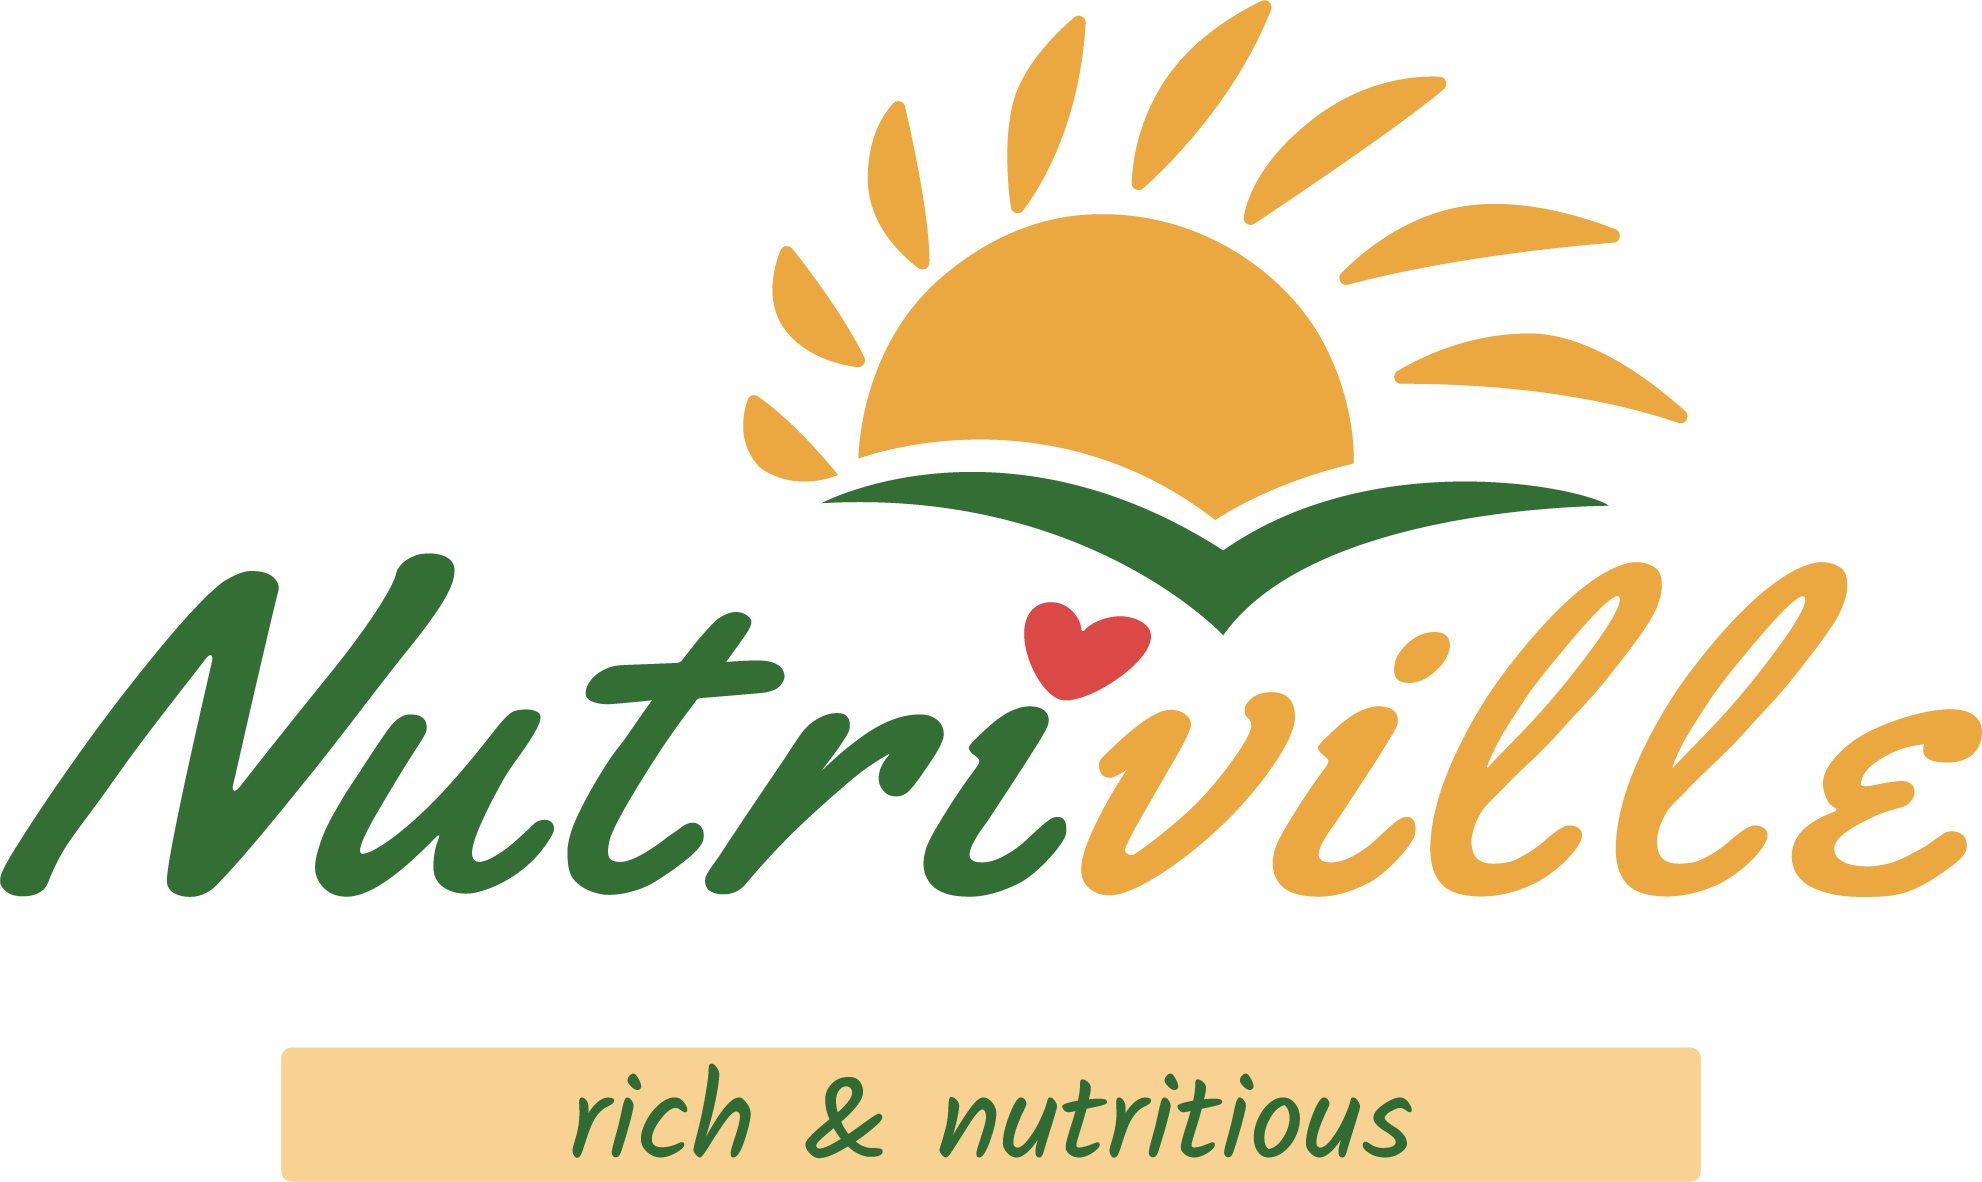 Nutriville logo with the slogan